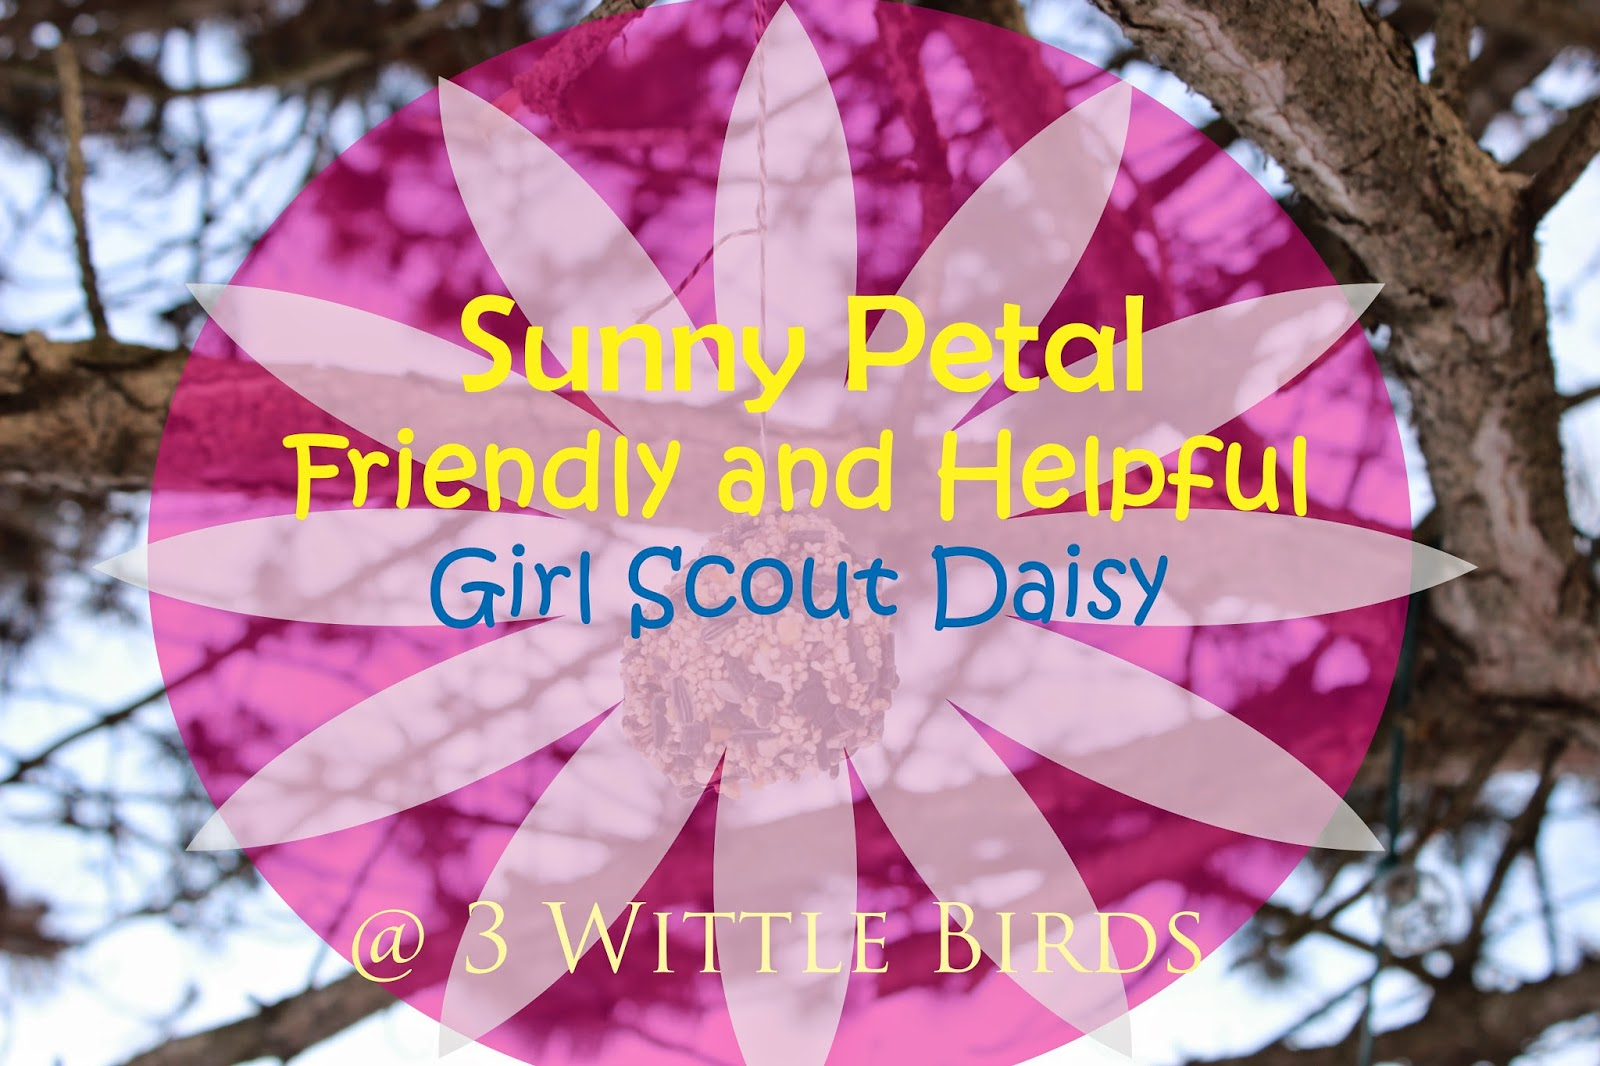 3 Wittle Birds Girl Scout Daisy Meeting Sunny Petal Friendly And